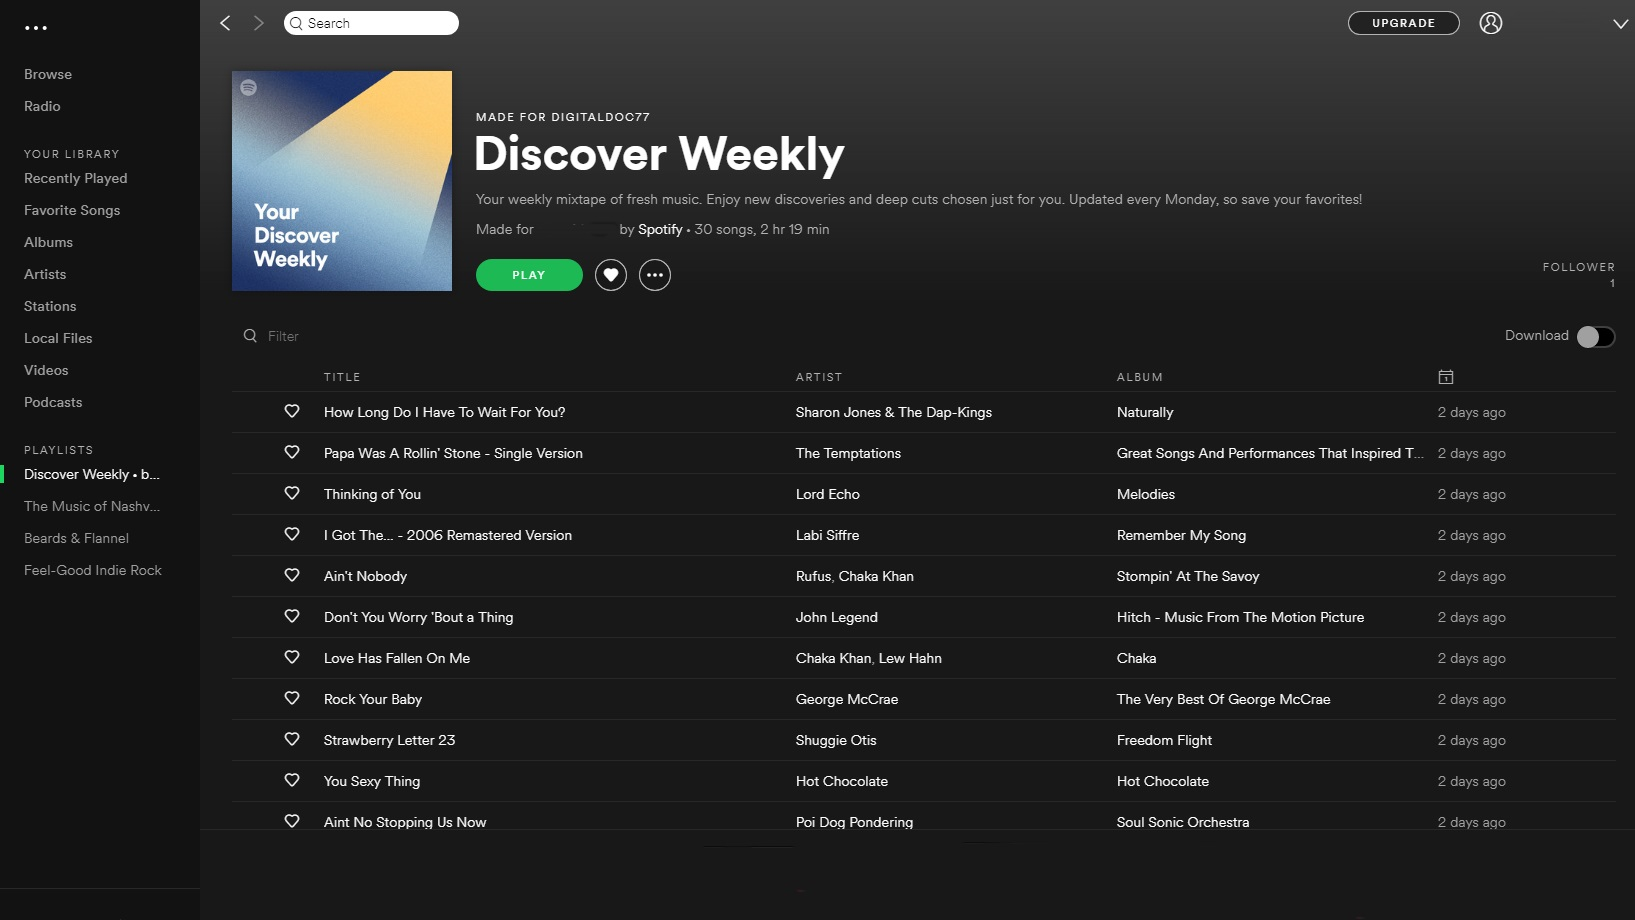 Spotify's 'Discover Weekly' feature